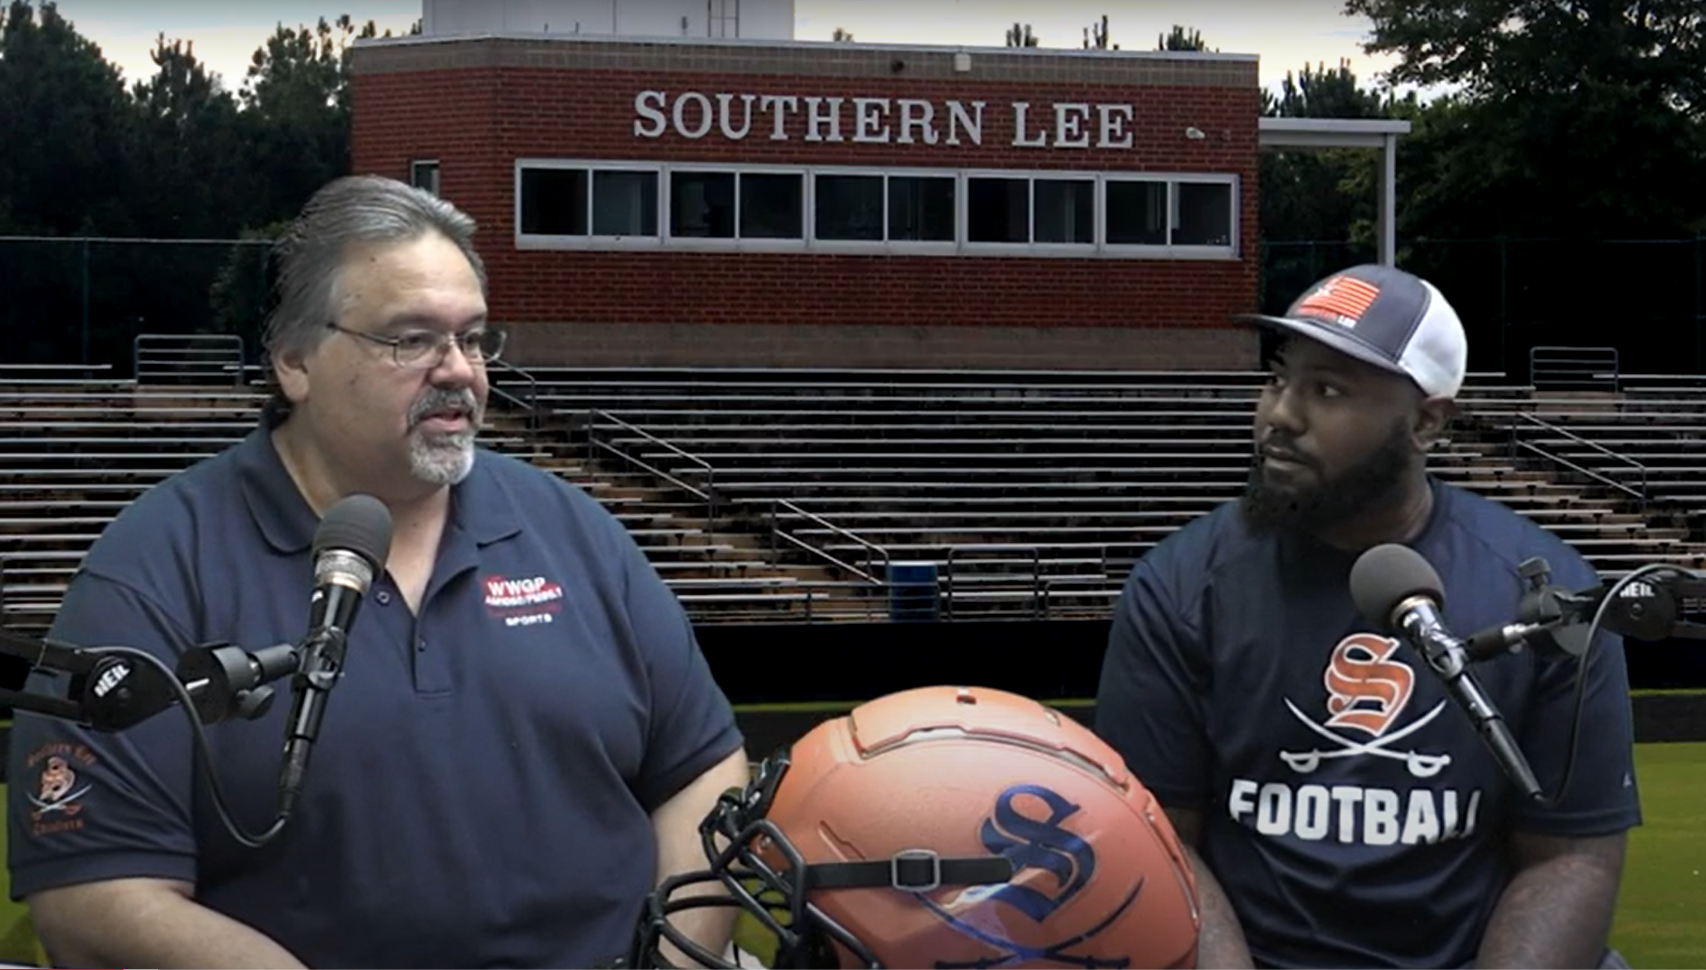 Sports host Mike Fowler sits with Coach McClure with the Southern Lee High School football field in the background